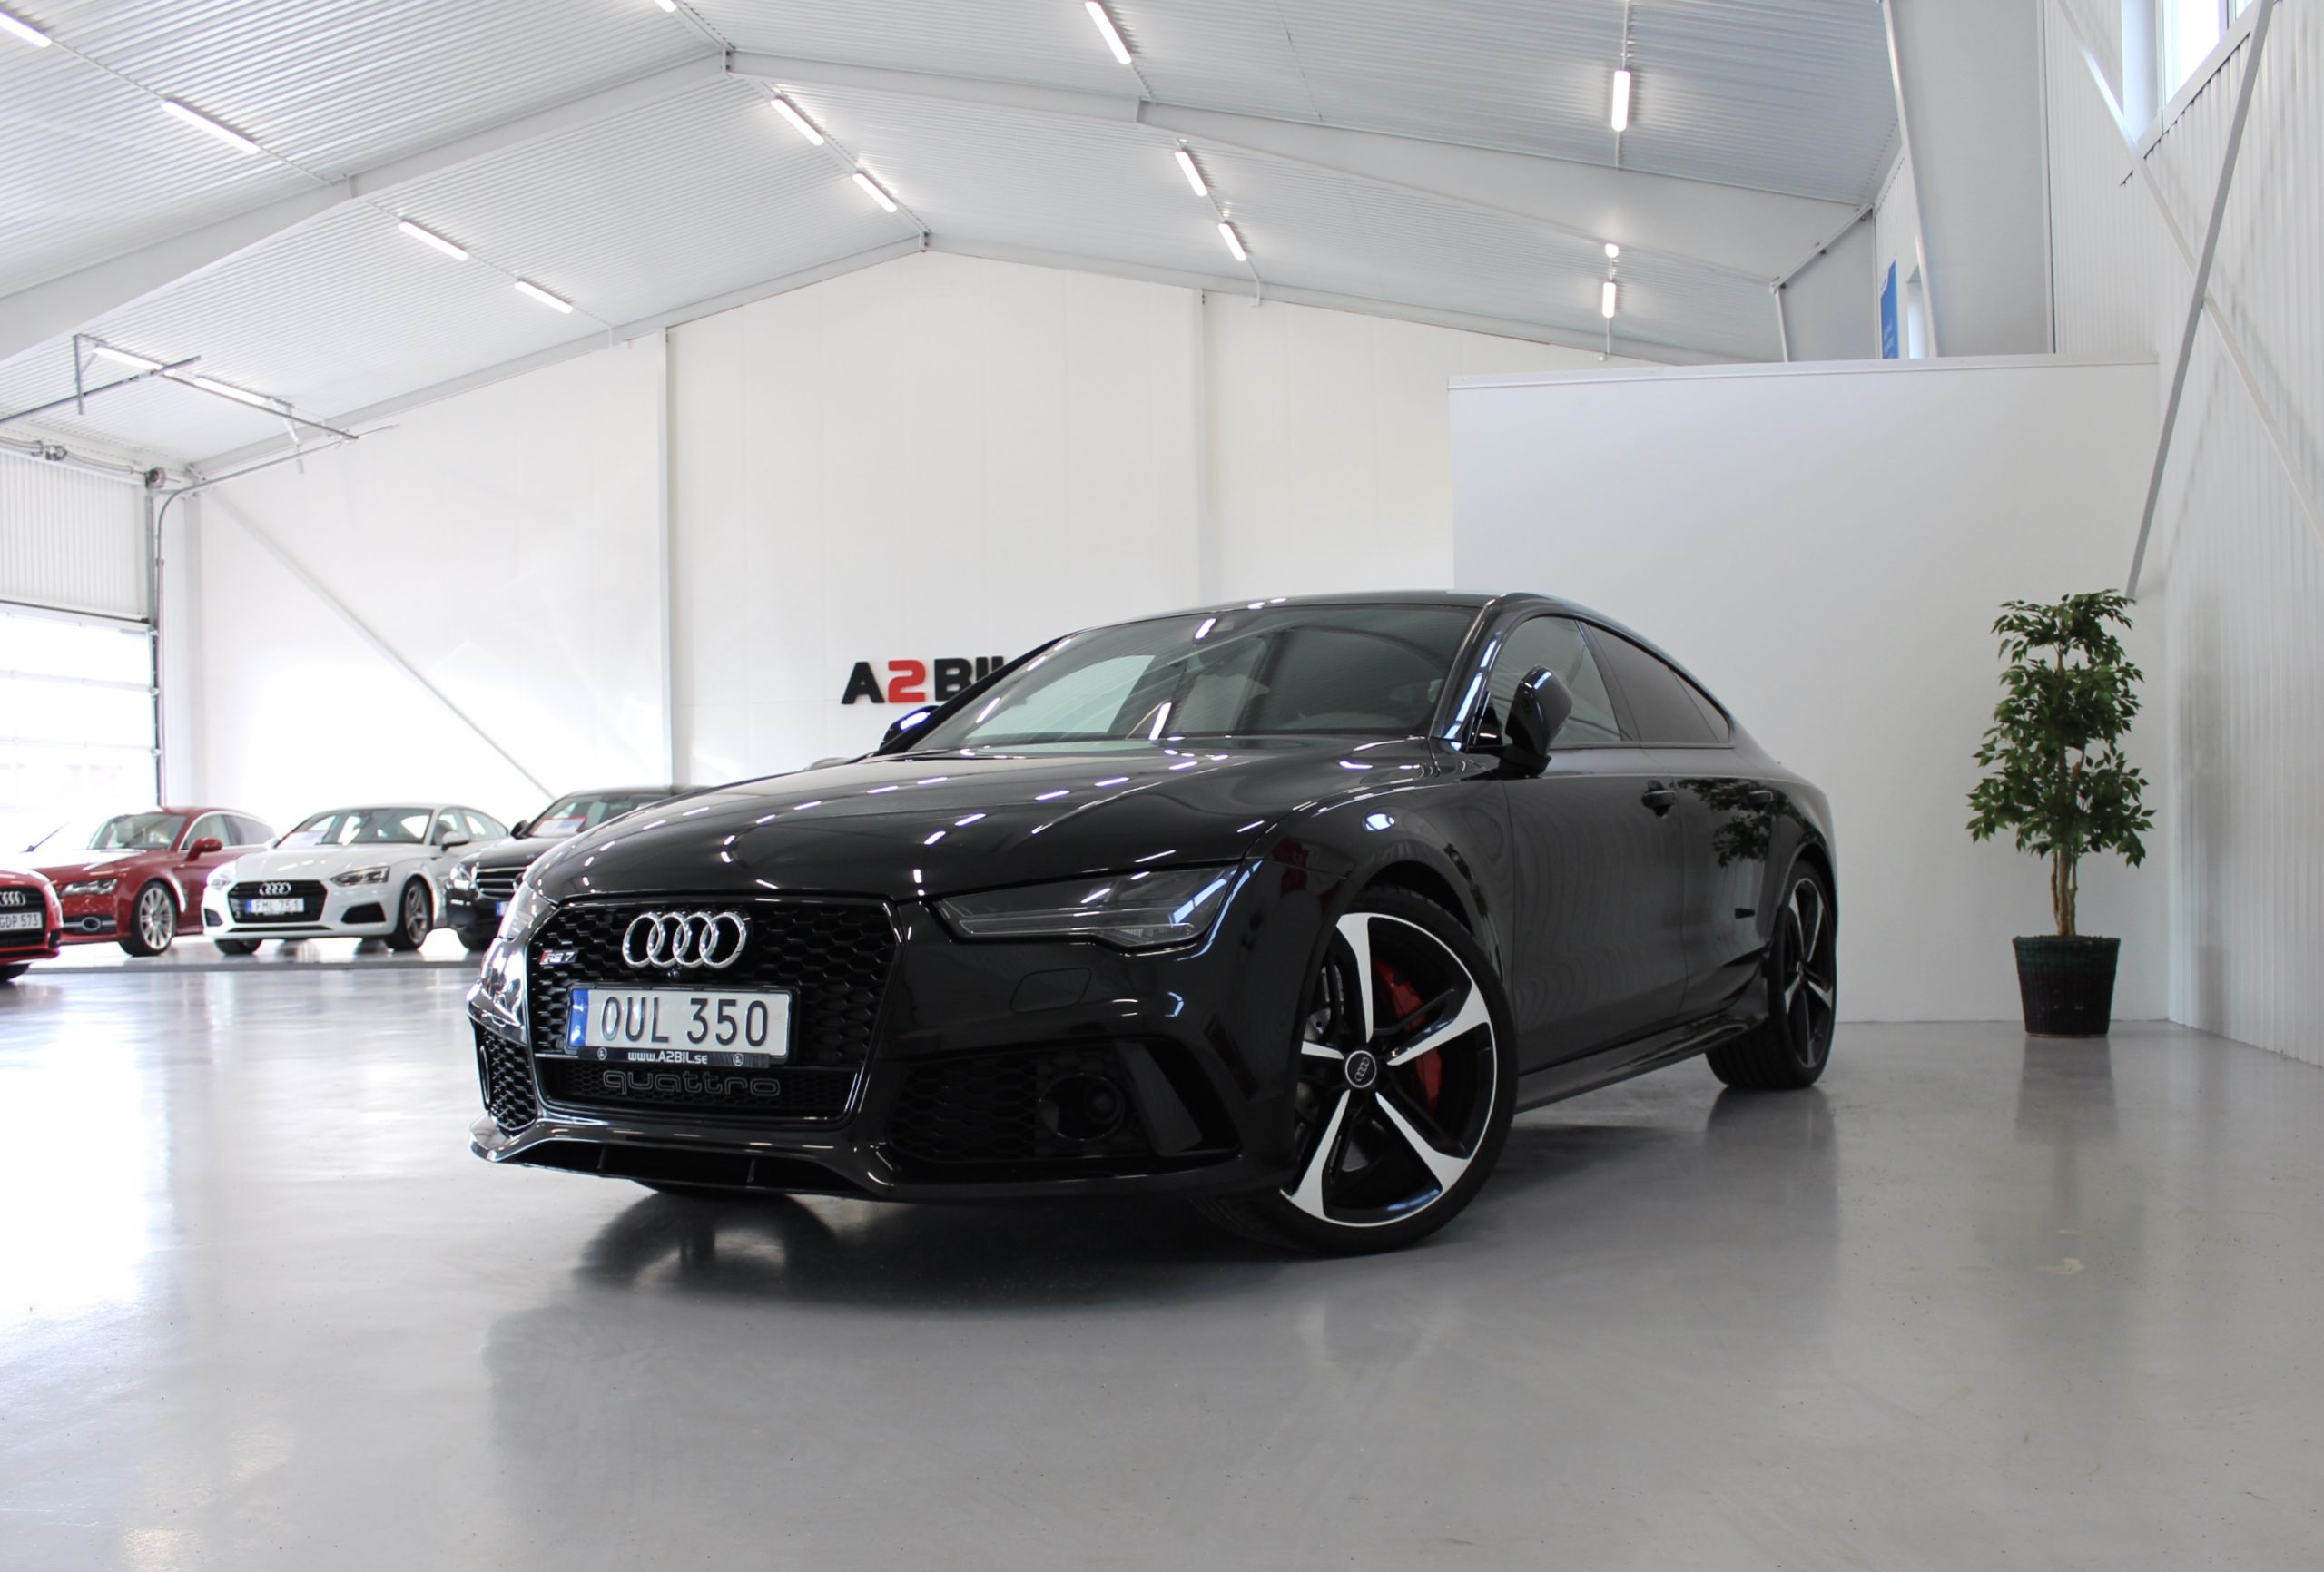 Audi RS7 Performance 4.0 TFSI Sv-Såld 605hk